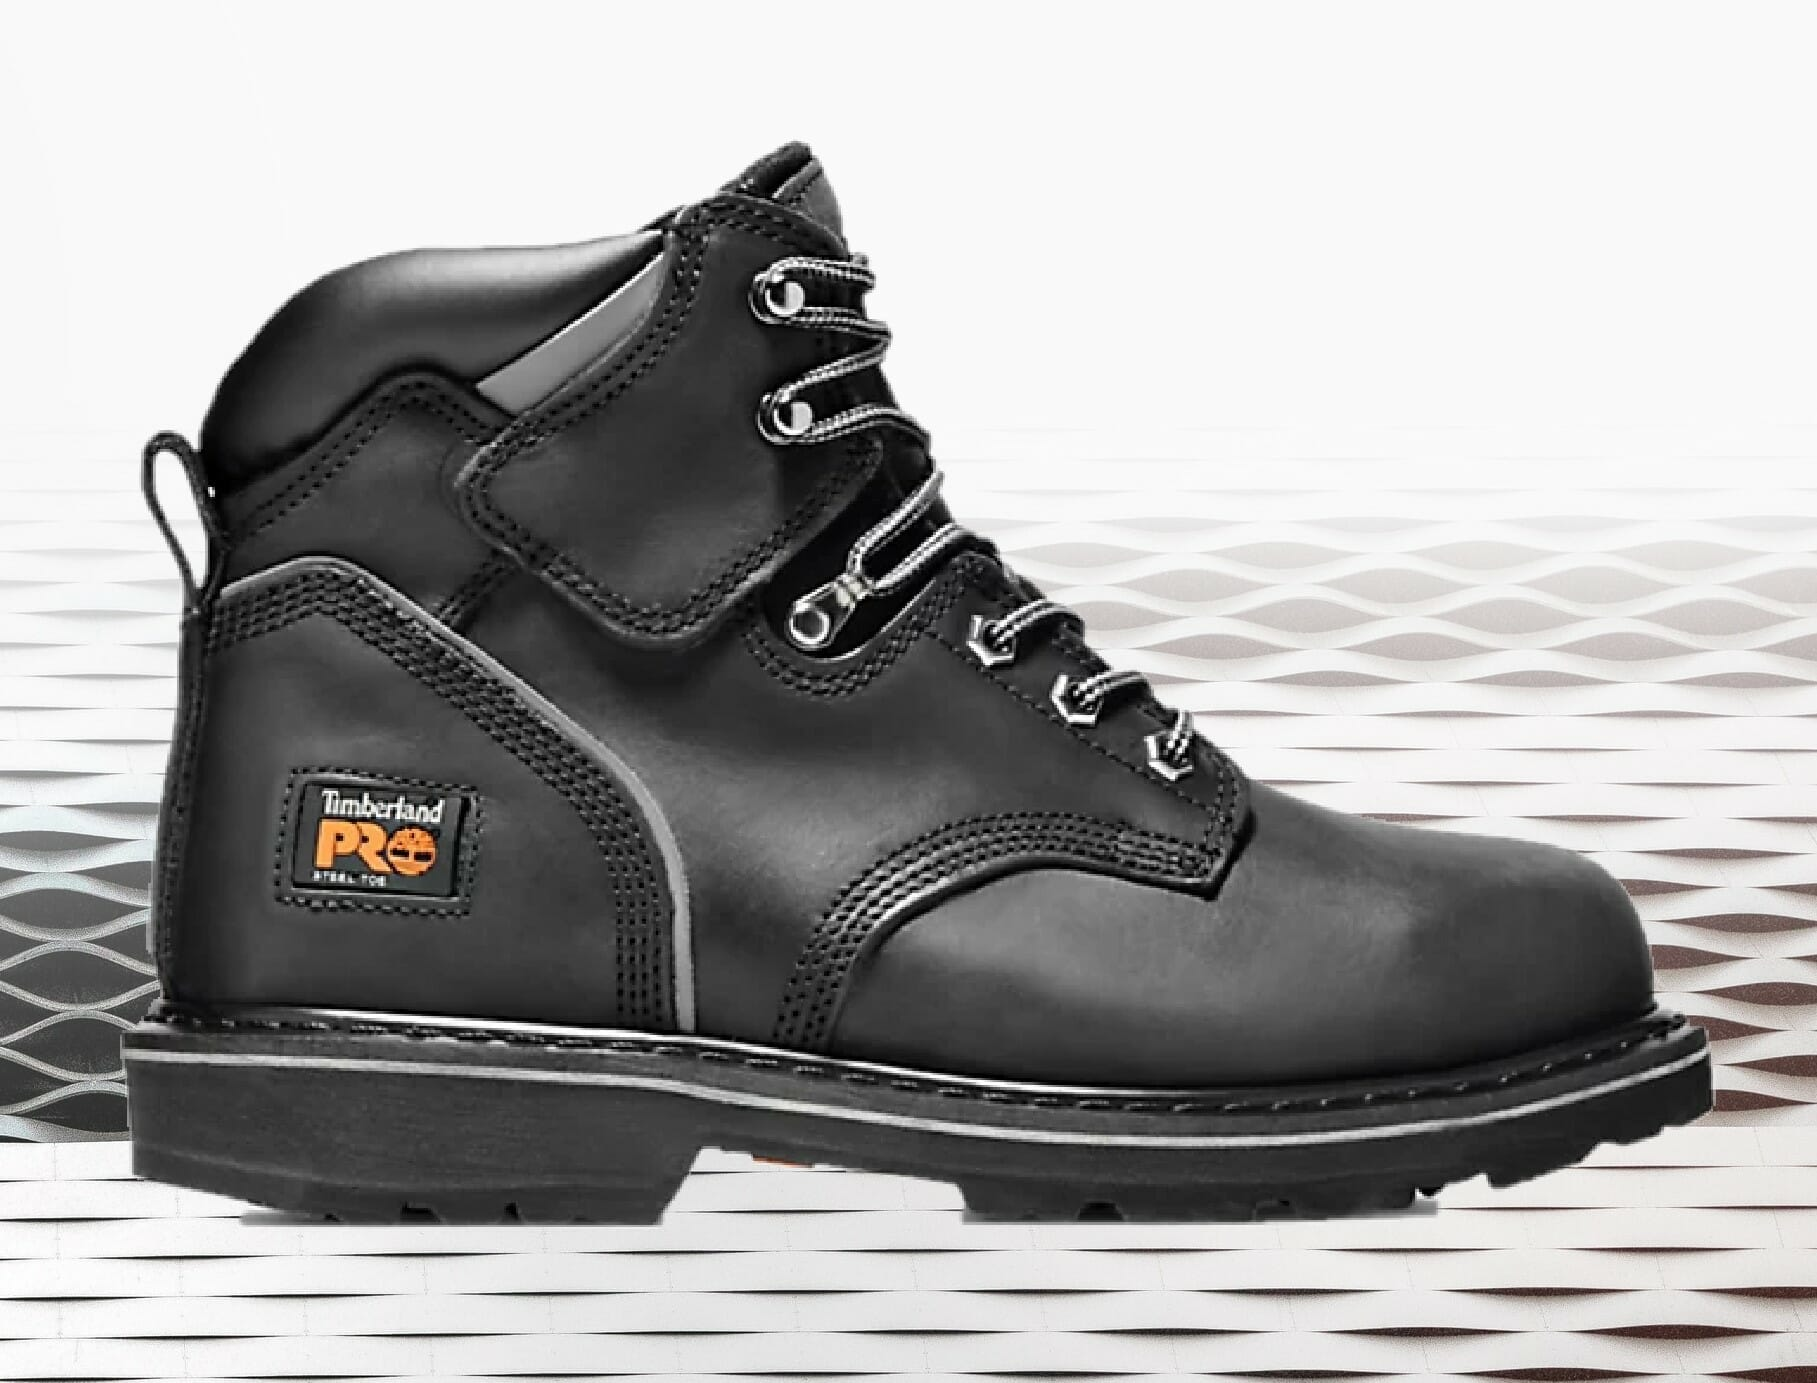 Timberland PRO Pitboss Work Boot for Men